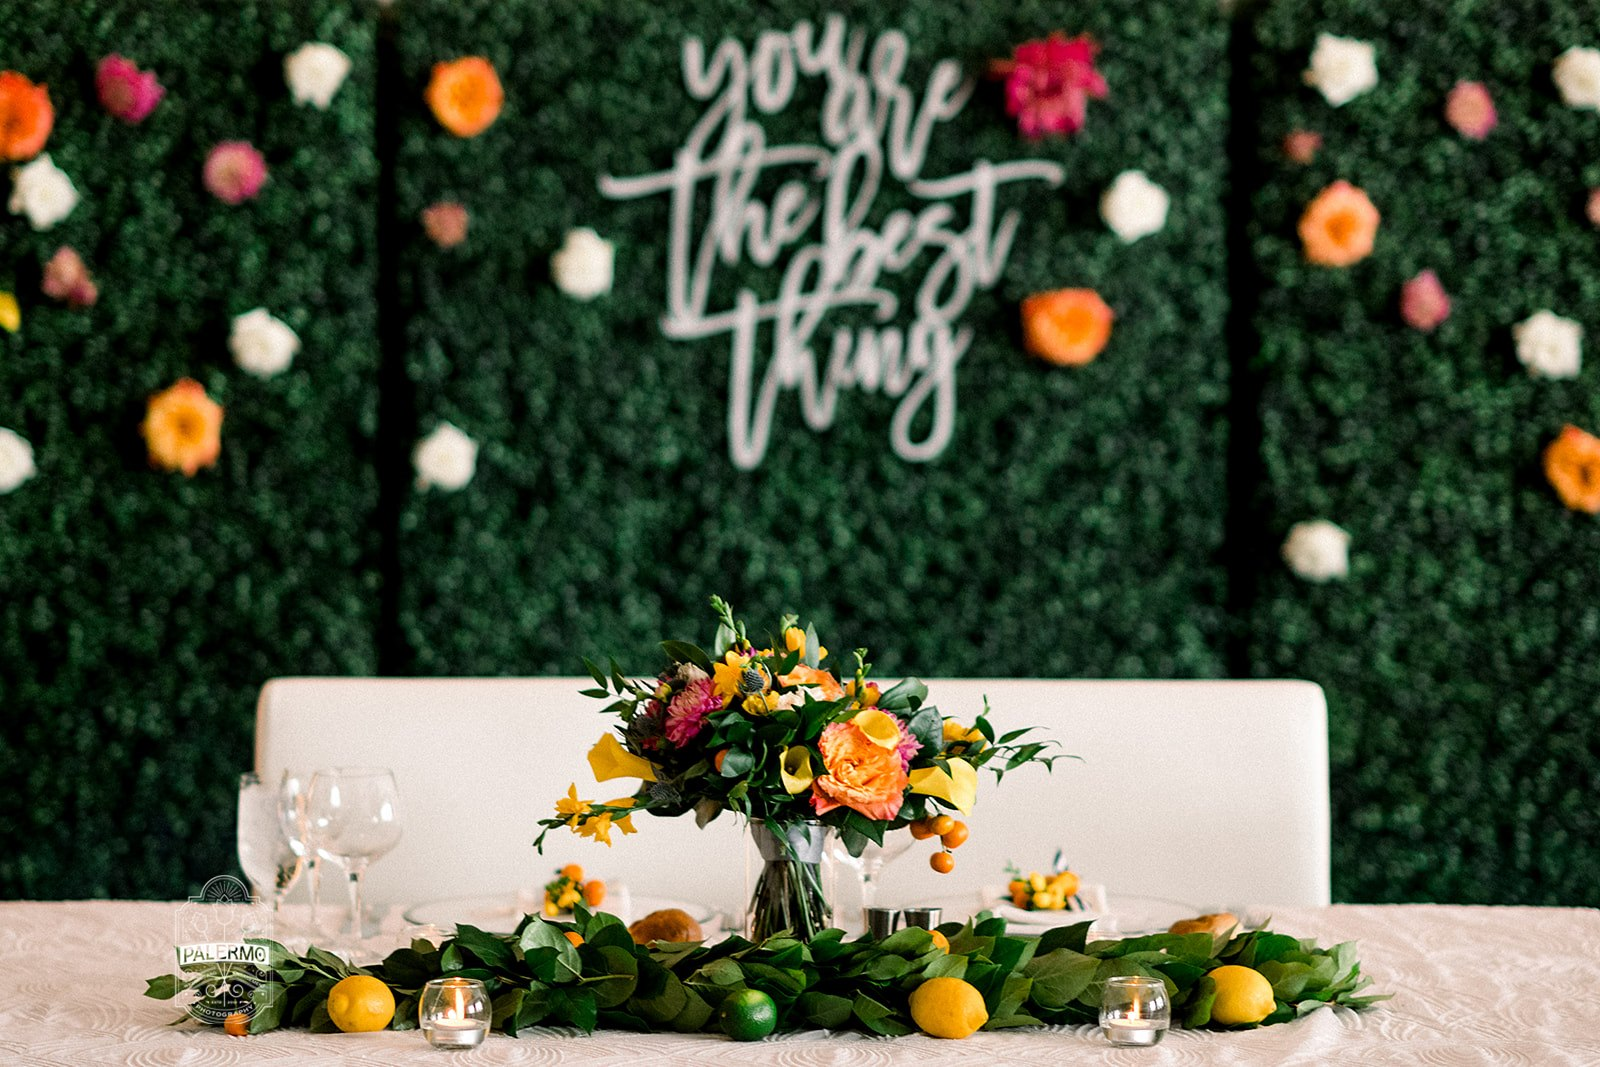 wedding head table boxwood hedges backdrop greenery garland citrus bridal bouquet summer wedding garden party